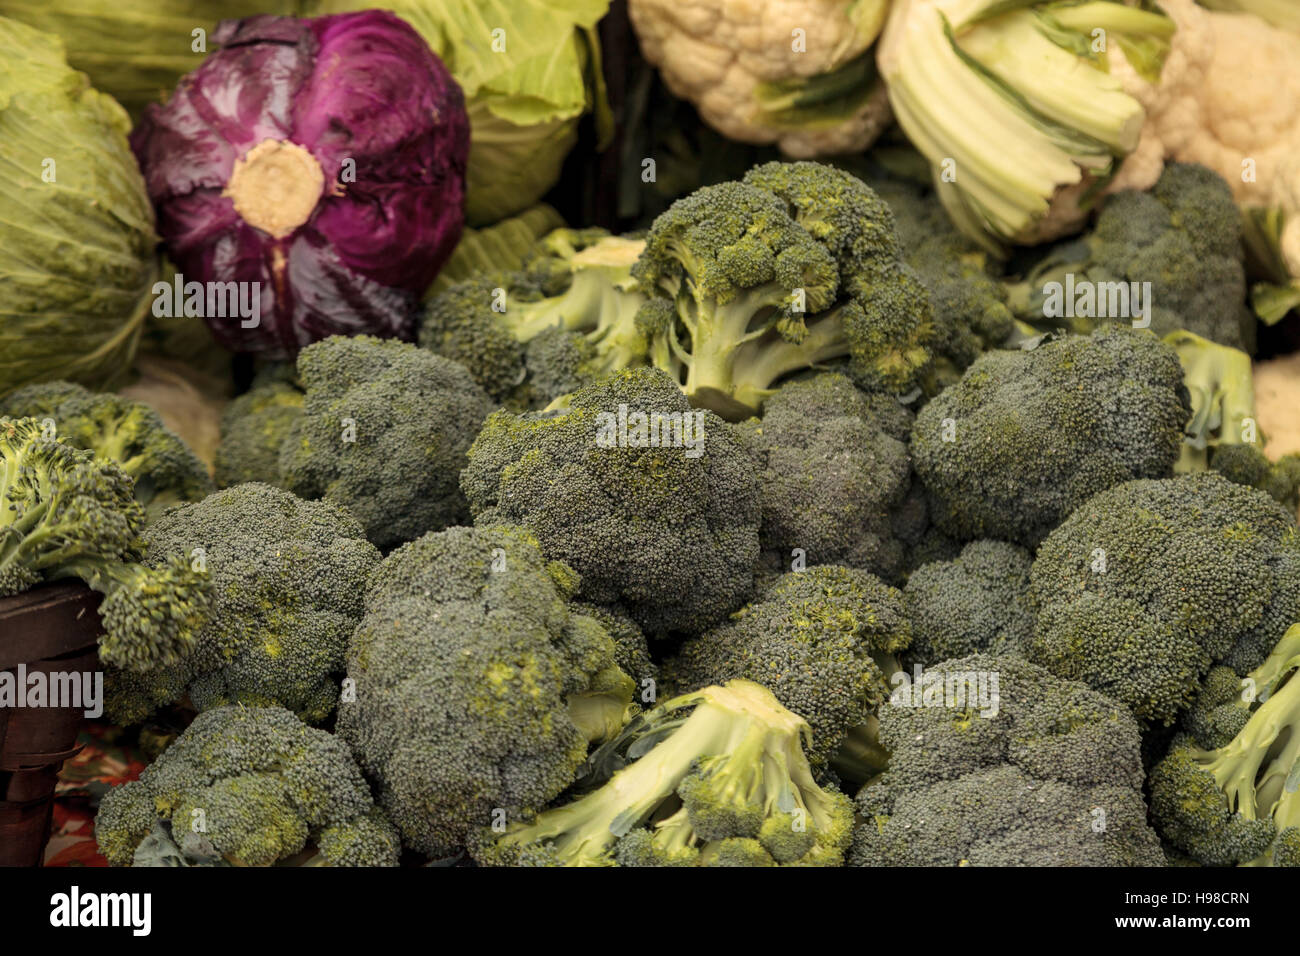 Organic Broccoli And Red Cabbage Grown On A Farm Displayed At Farmers Market